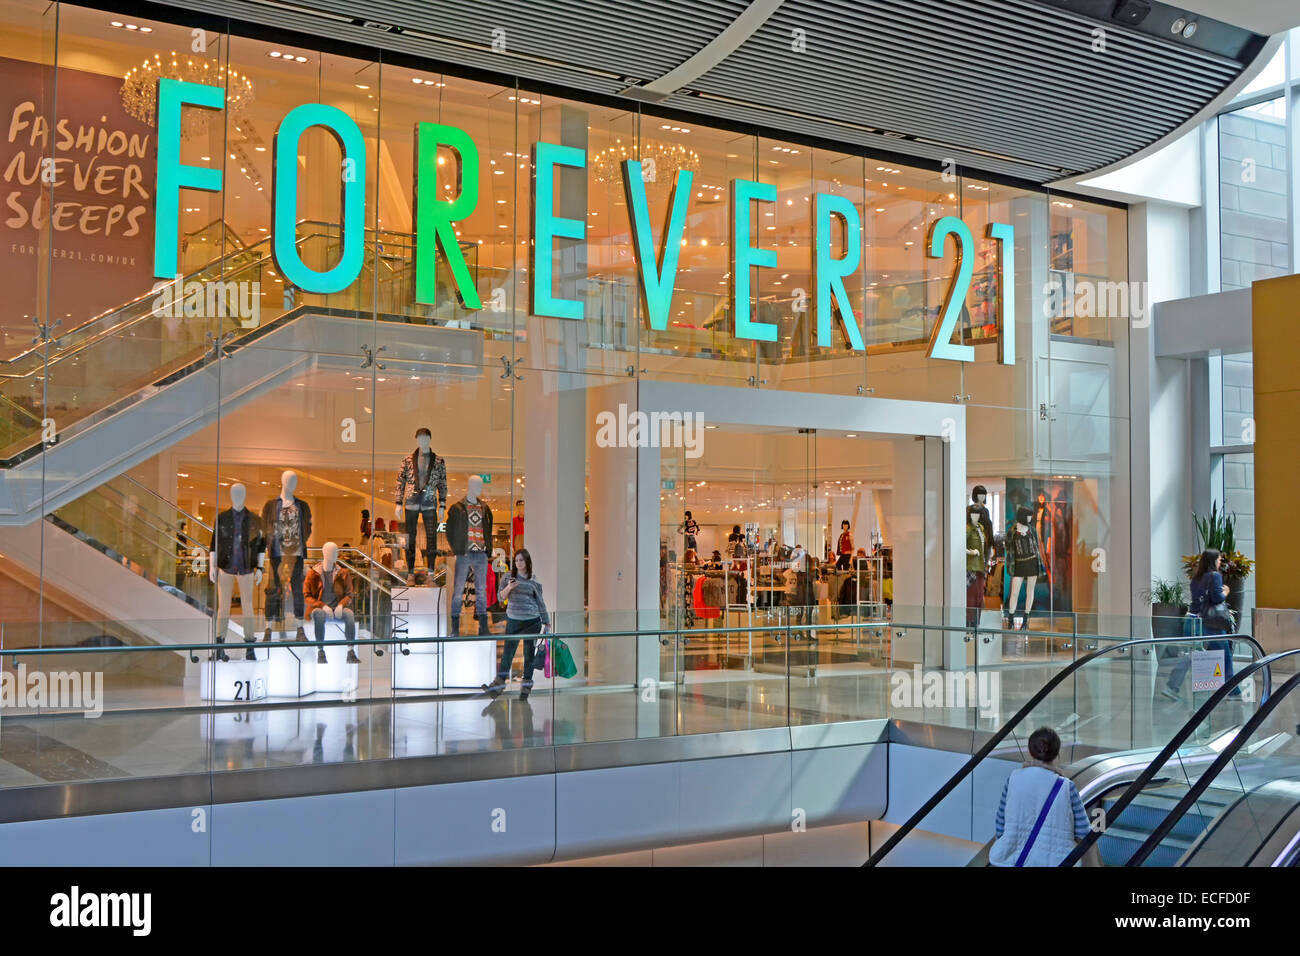 forever 21 american chain of clothing retailers shopfront in stock